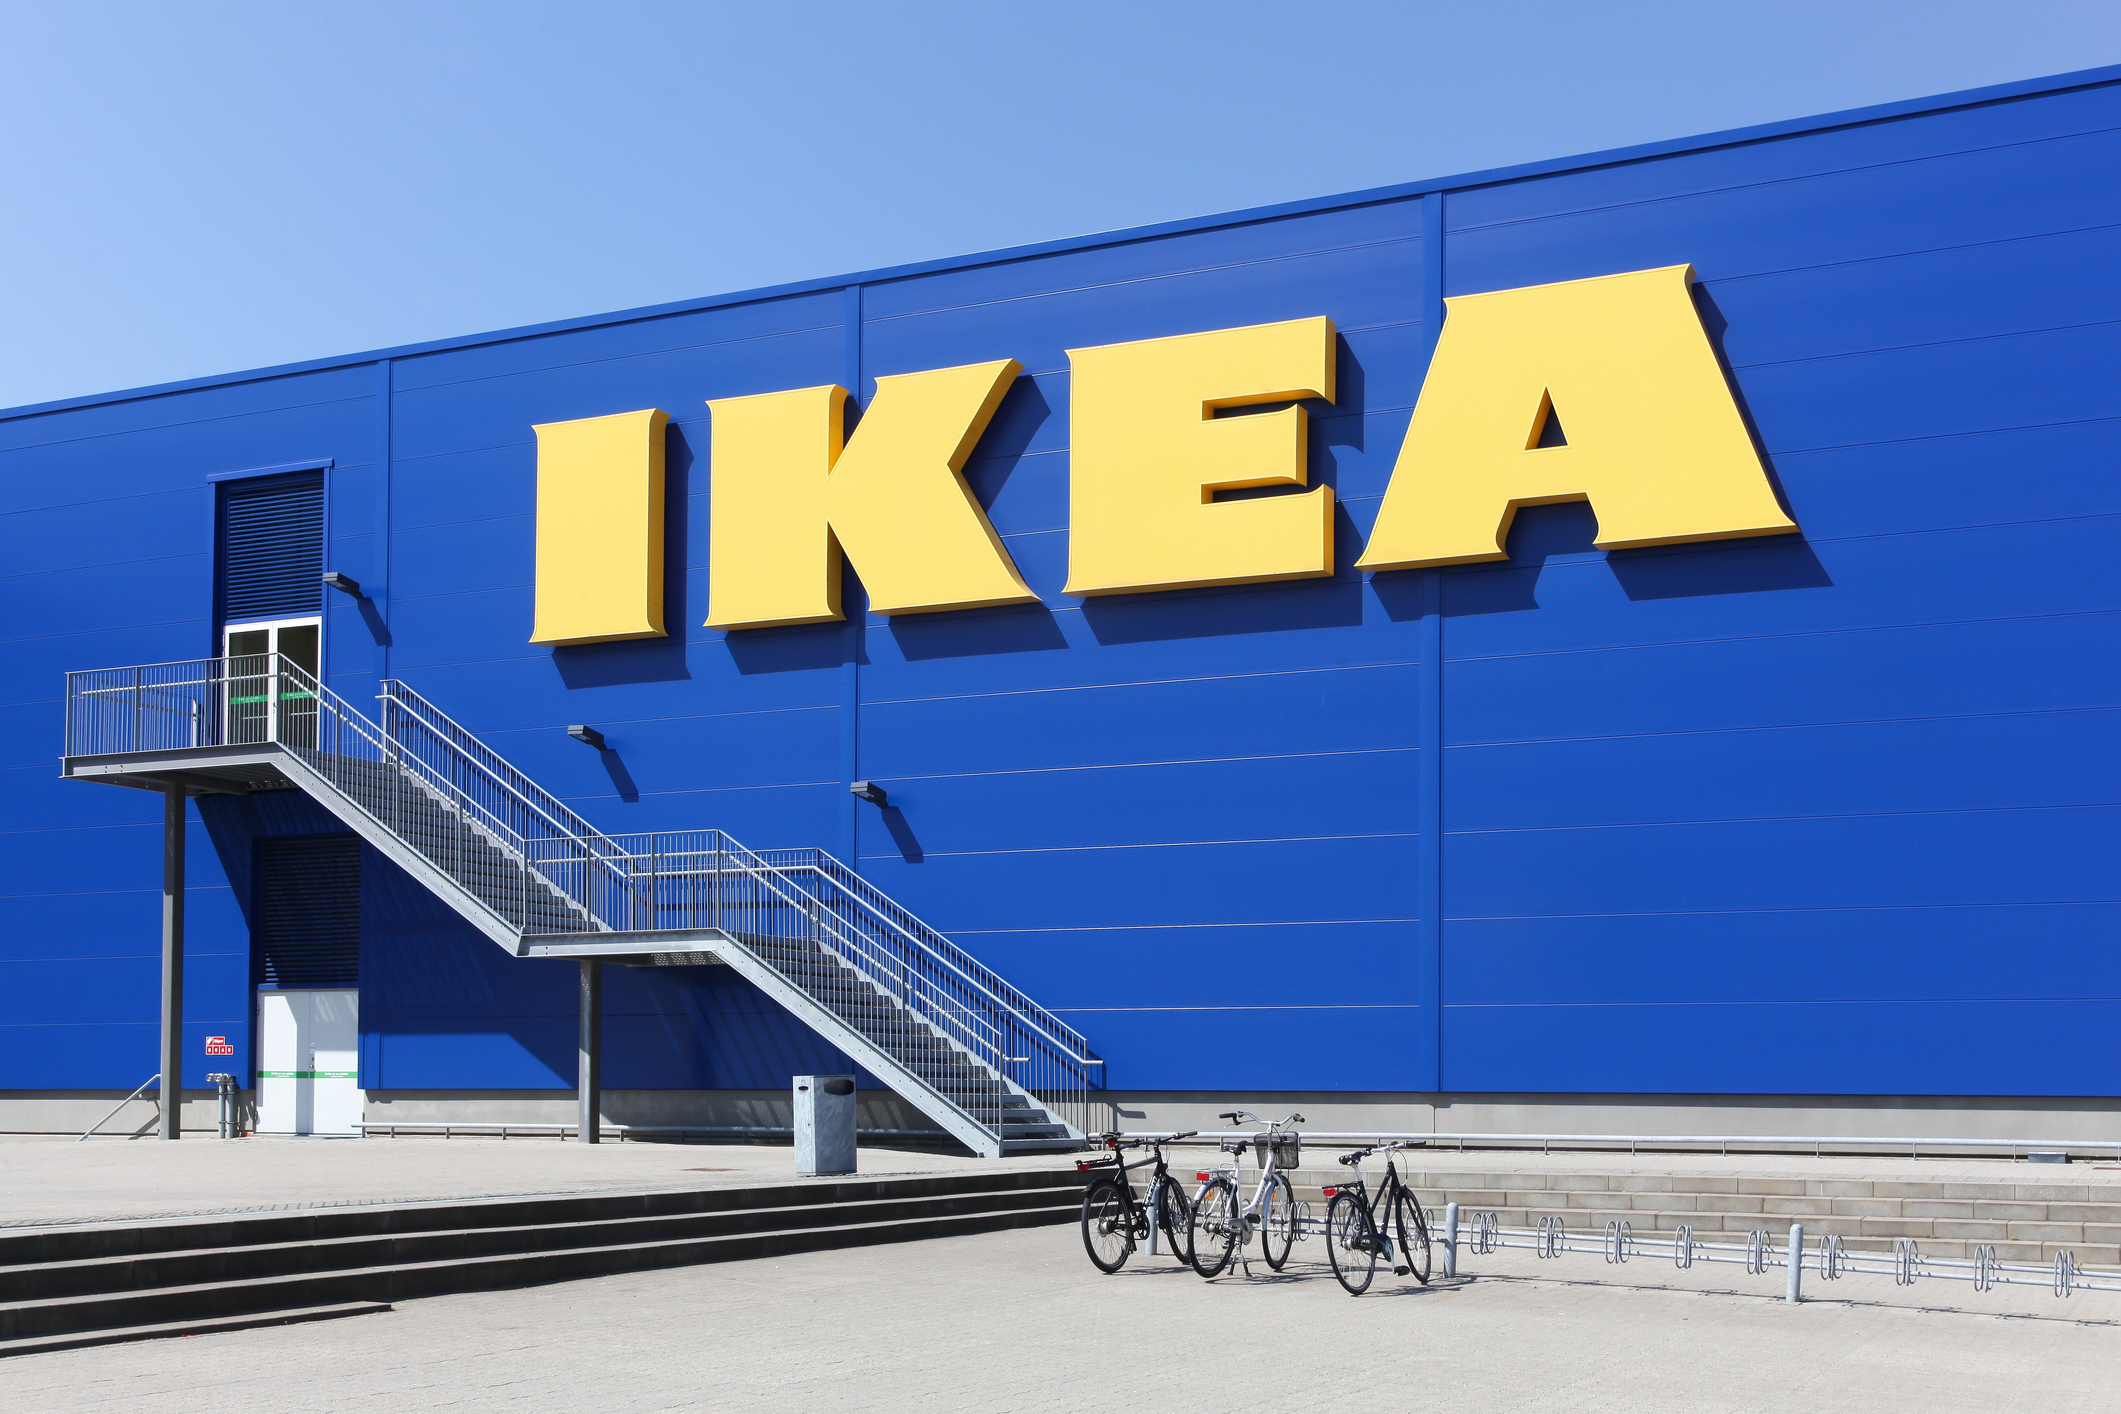 Ikea Burbank Directions 17 Insider Things To Know About Ikea From Employees Who Ve Worked